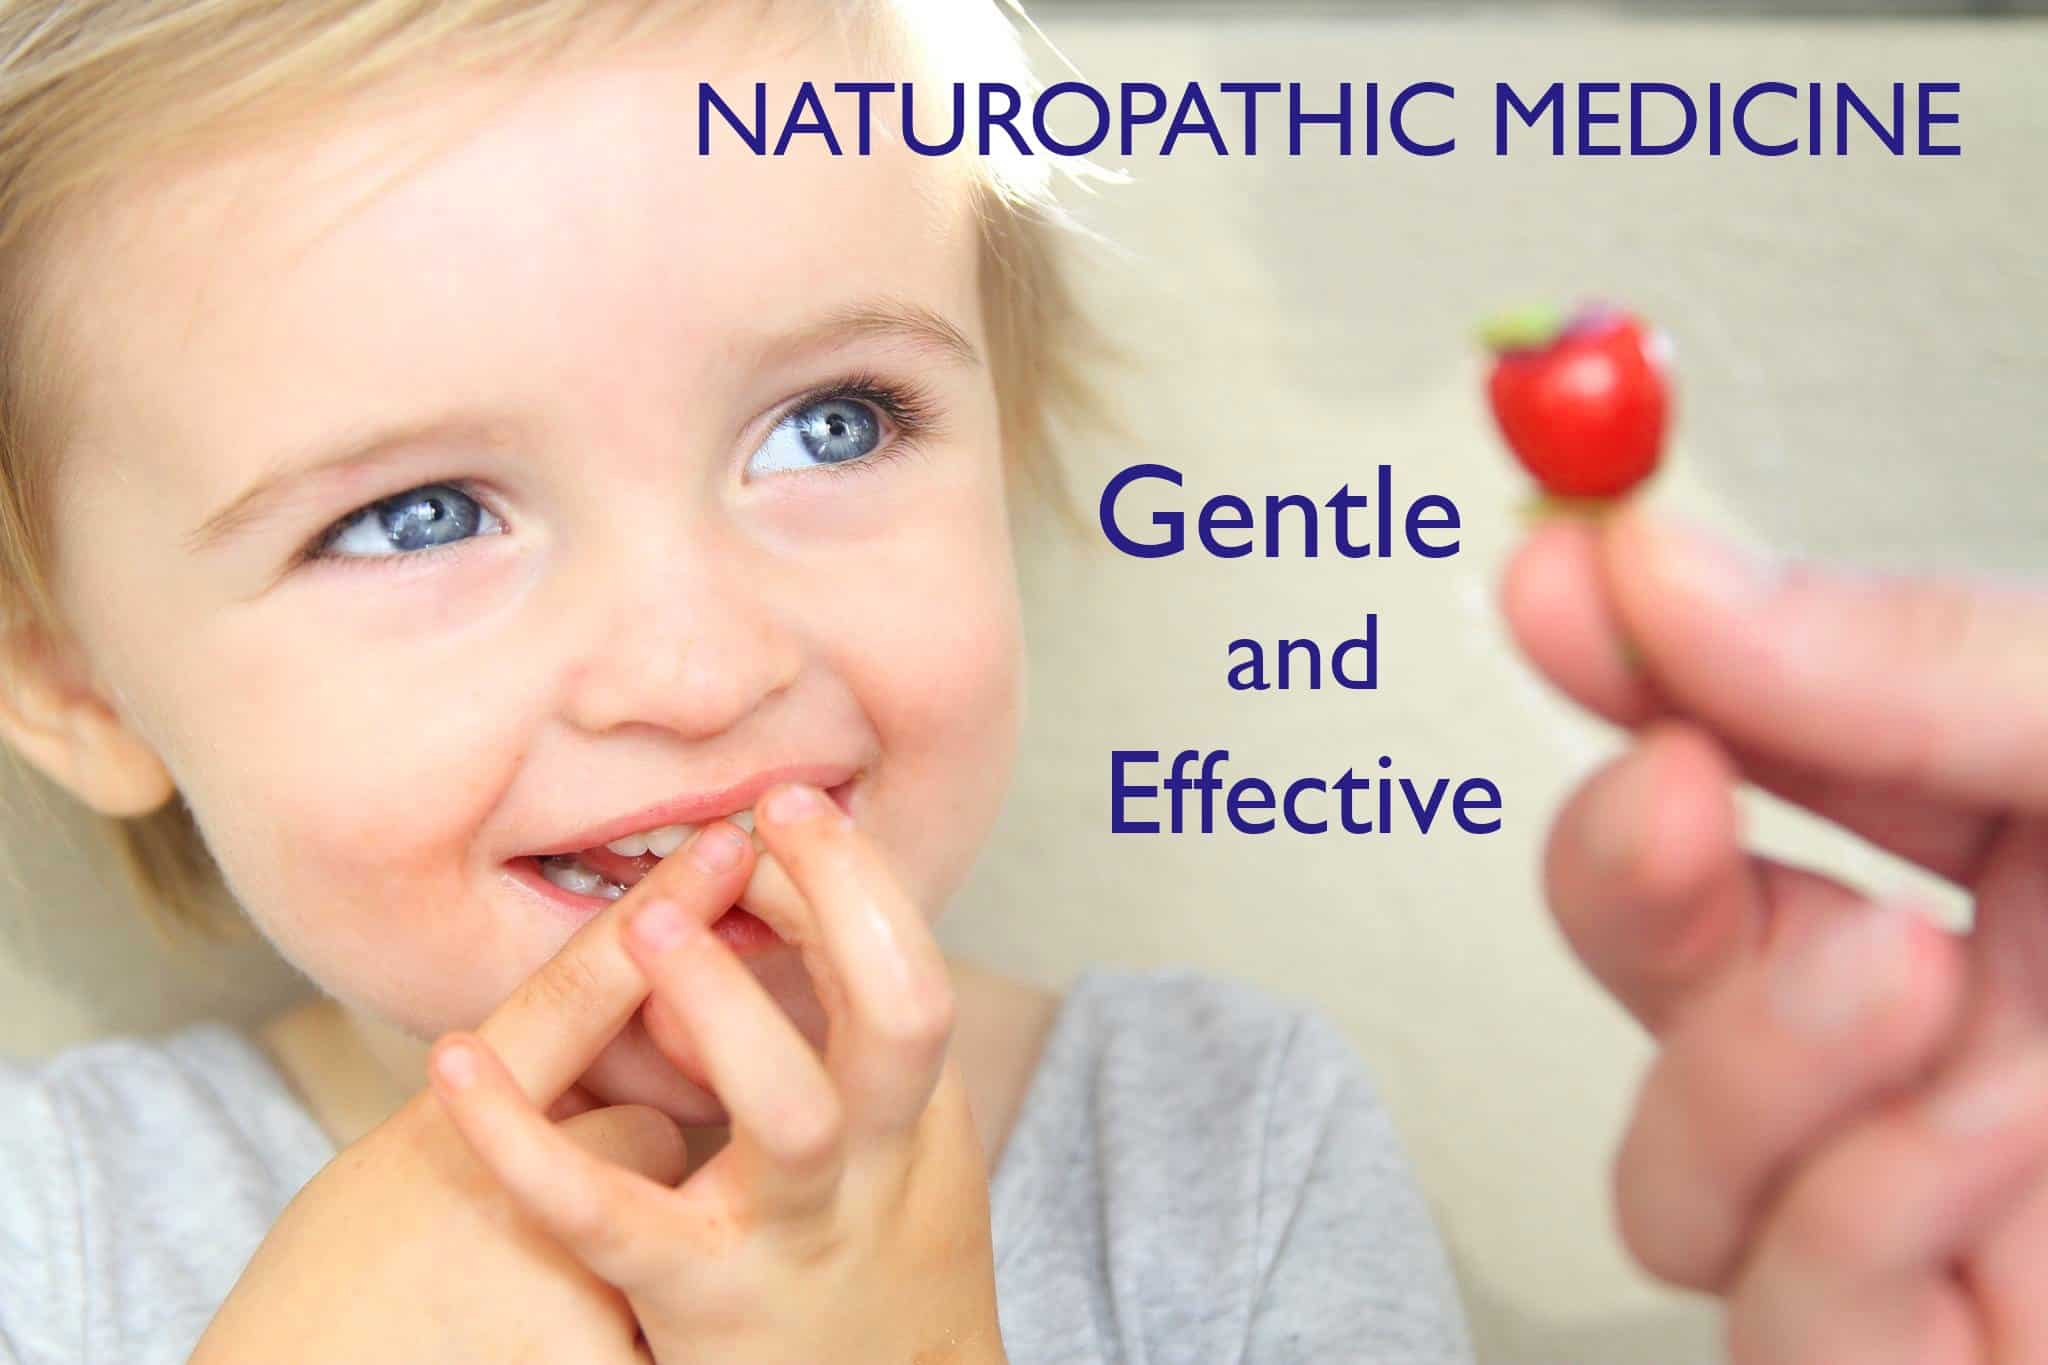 Is Naturopathic Medicine Safe? | Institute for Natural Medicine